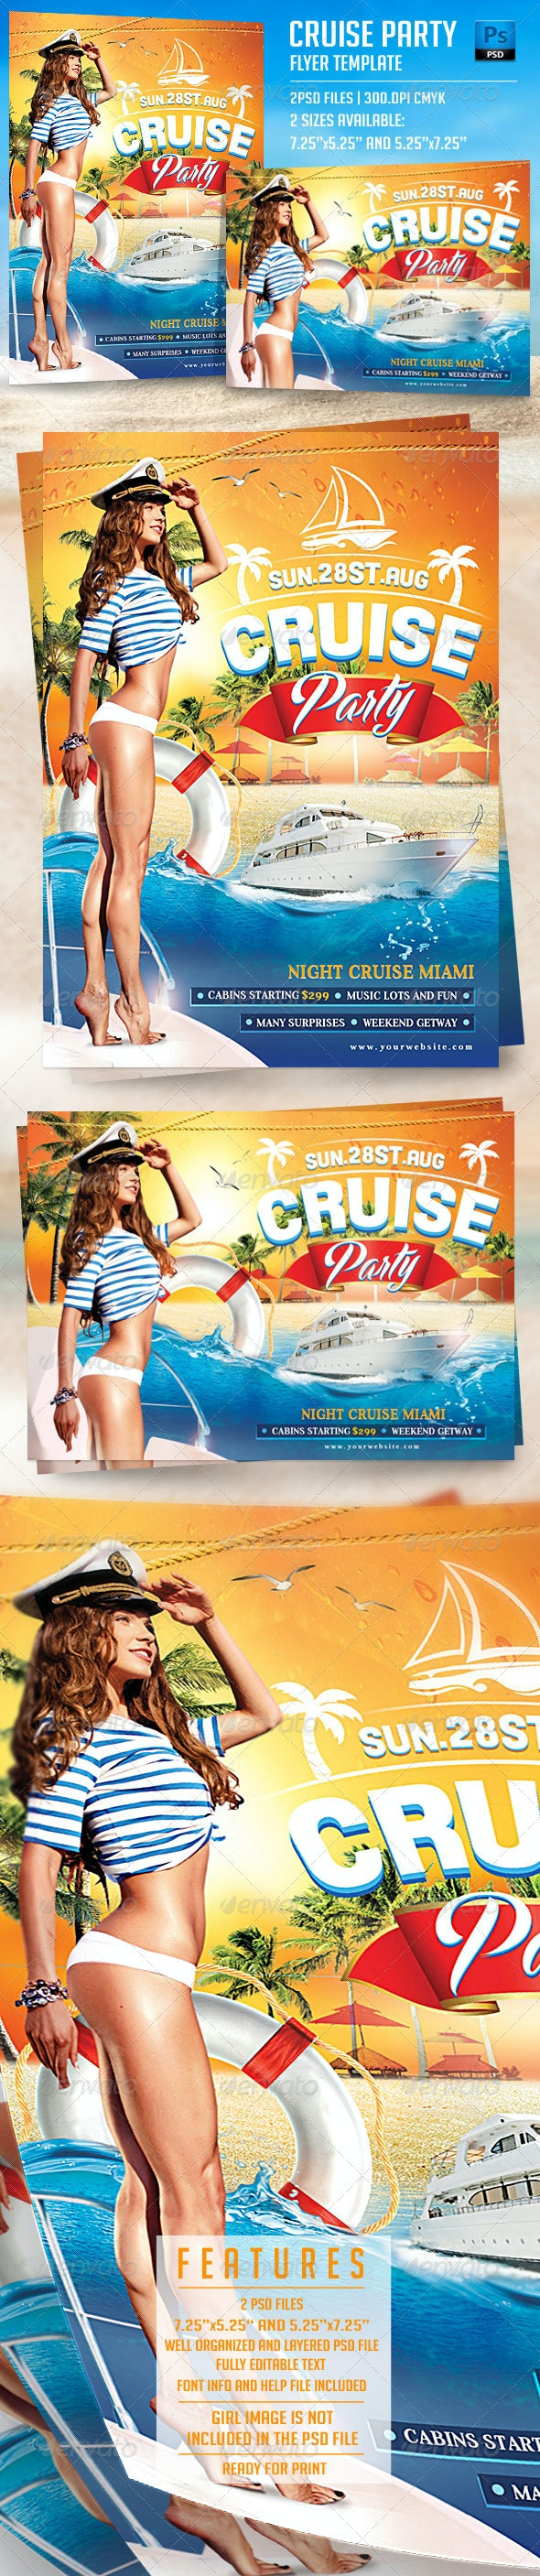 Cruise Party Flyer Template - Flyers Print Templates